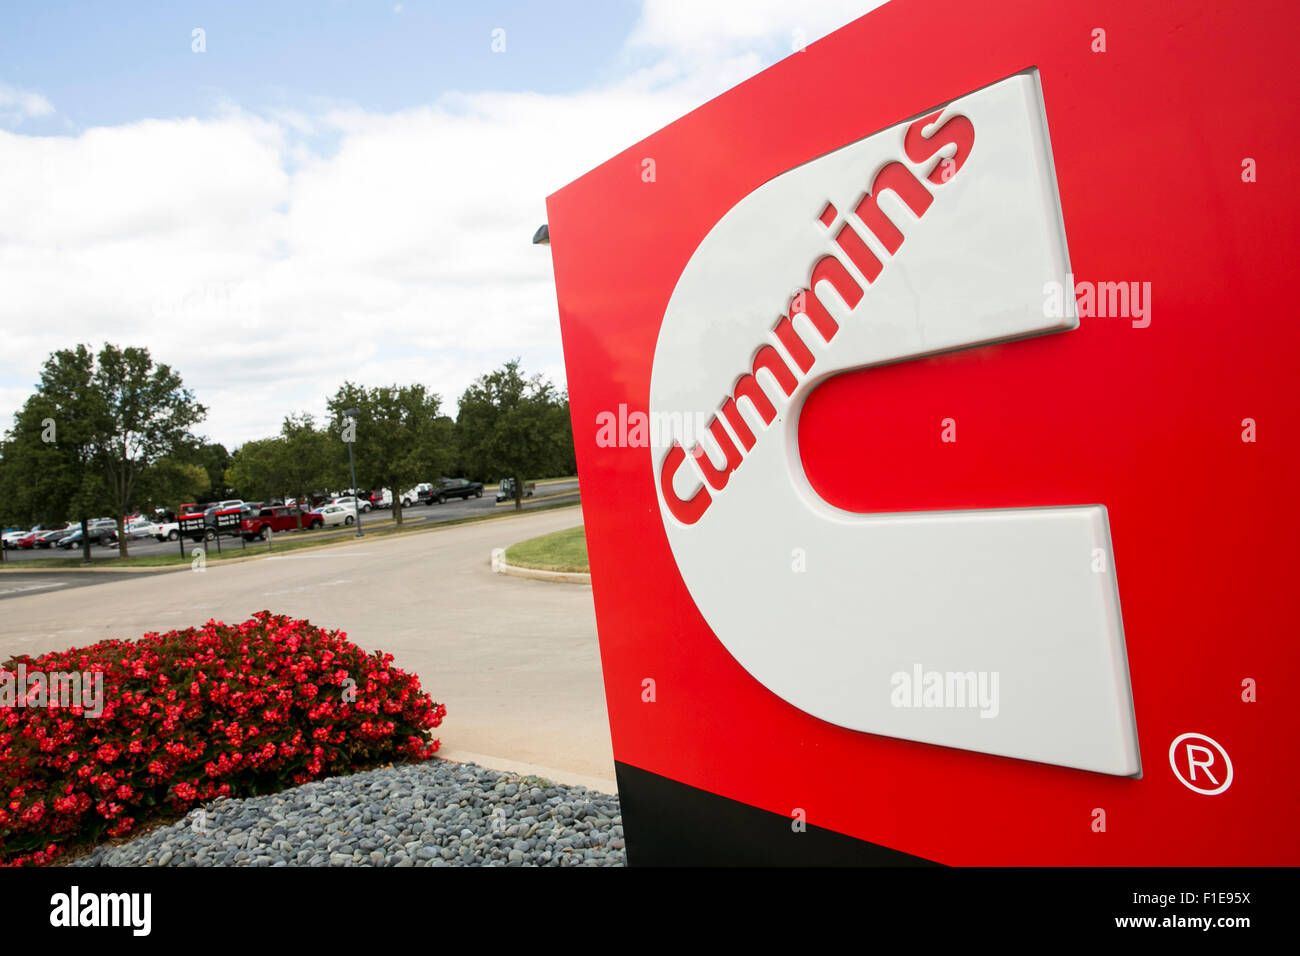 A logo sign outside of the cummins inc columbus engine plant in a logo sign outside of the cummins inc columbus engine plant in columbus indiana on august 25 2015 biocorpaavc Images